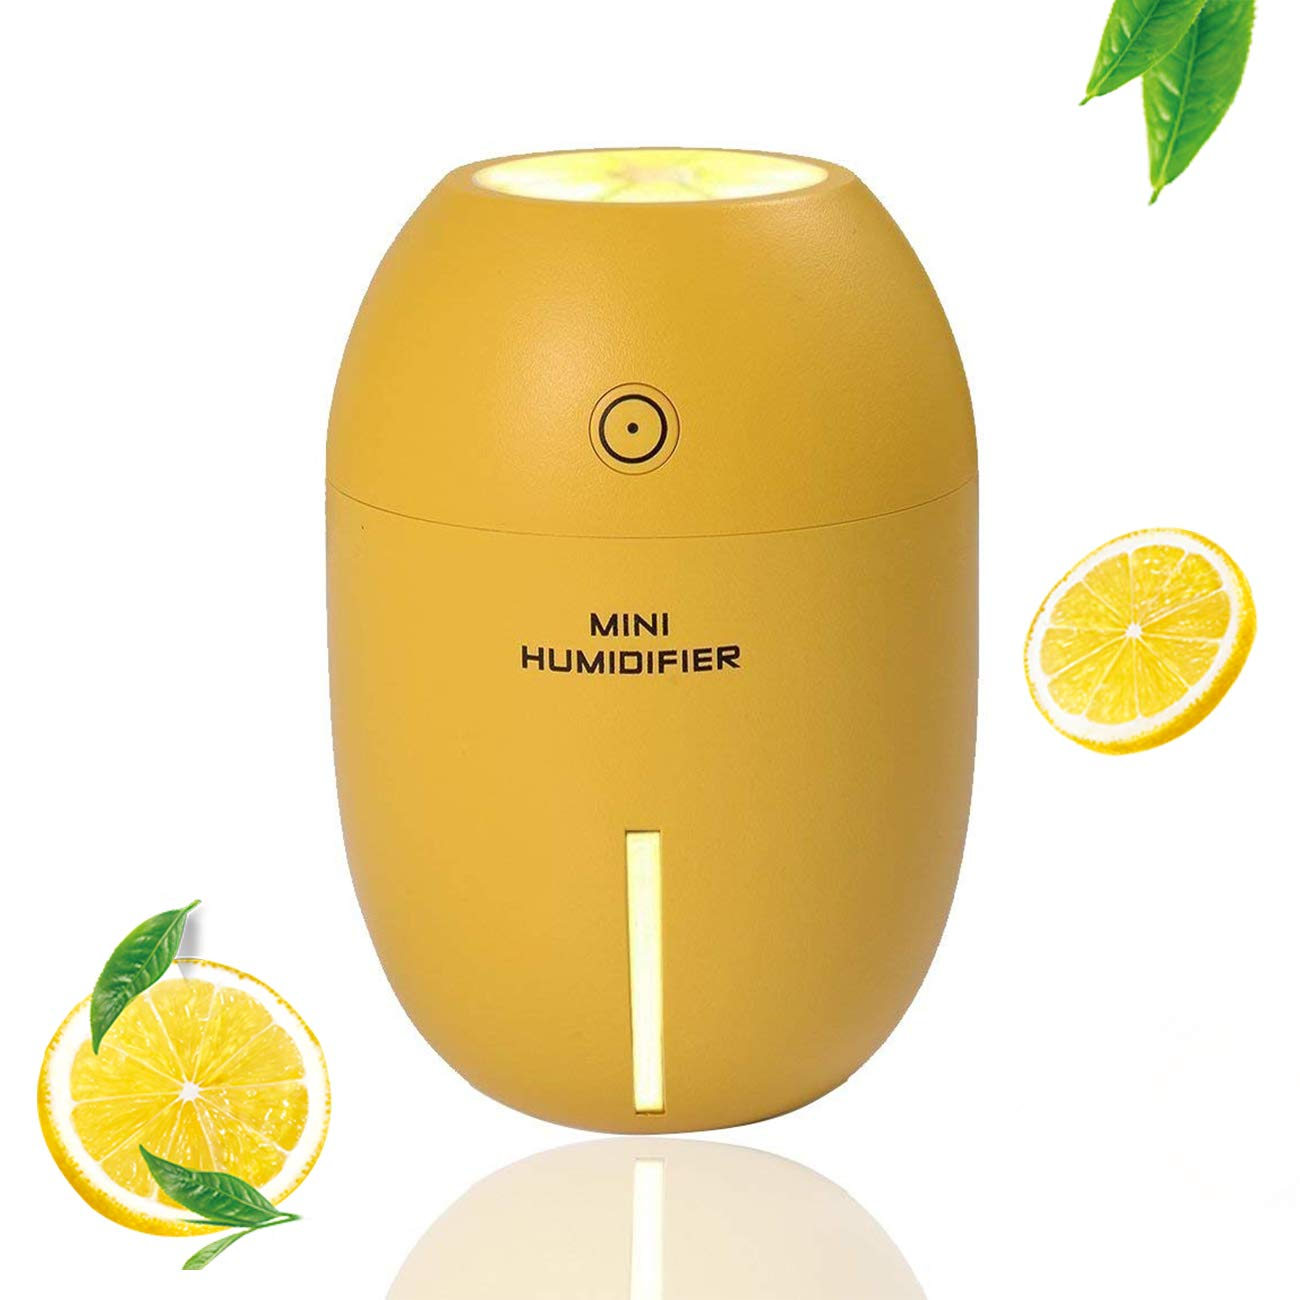 DC-BEAUTIFUL Portable Mini USB Cosmetology Humidifier 180ml Lemon Shape,Office Cool Mist Humidifier Car Air Humidifier Bedroom Purifier for House Desktop Spa Baby Kids